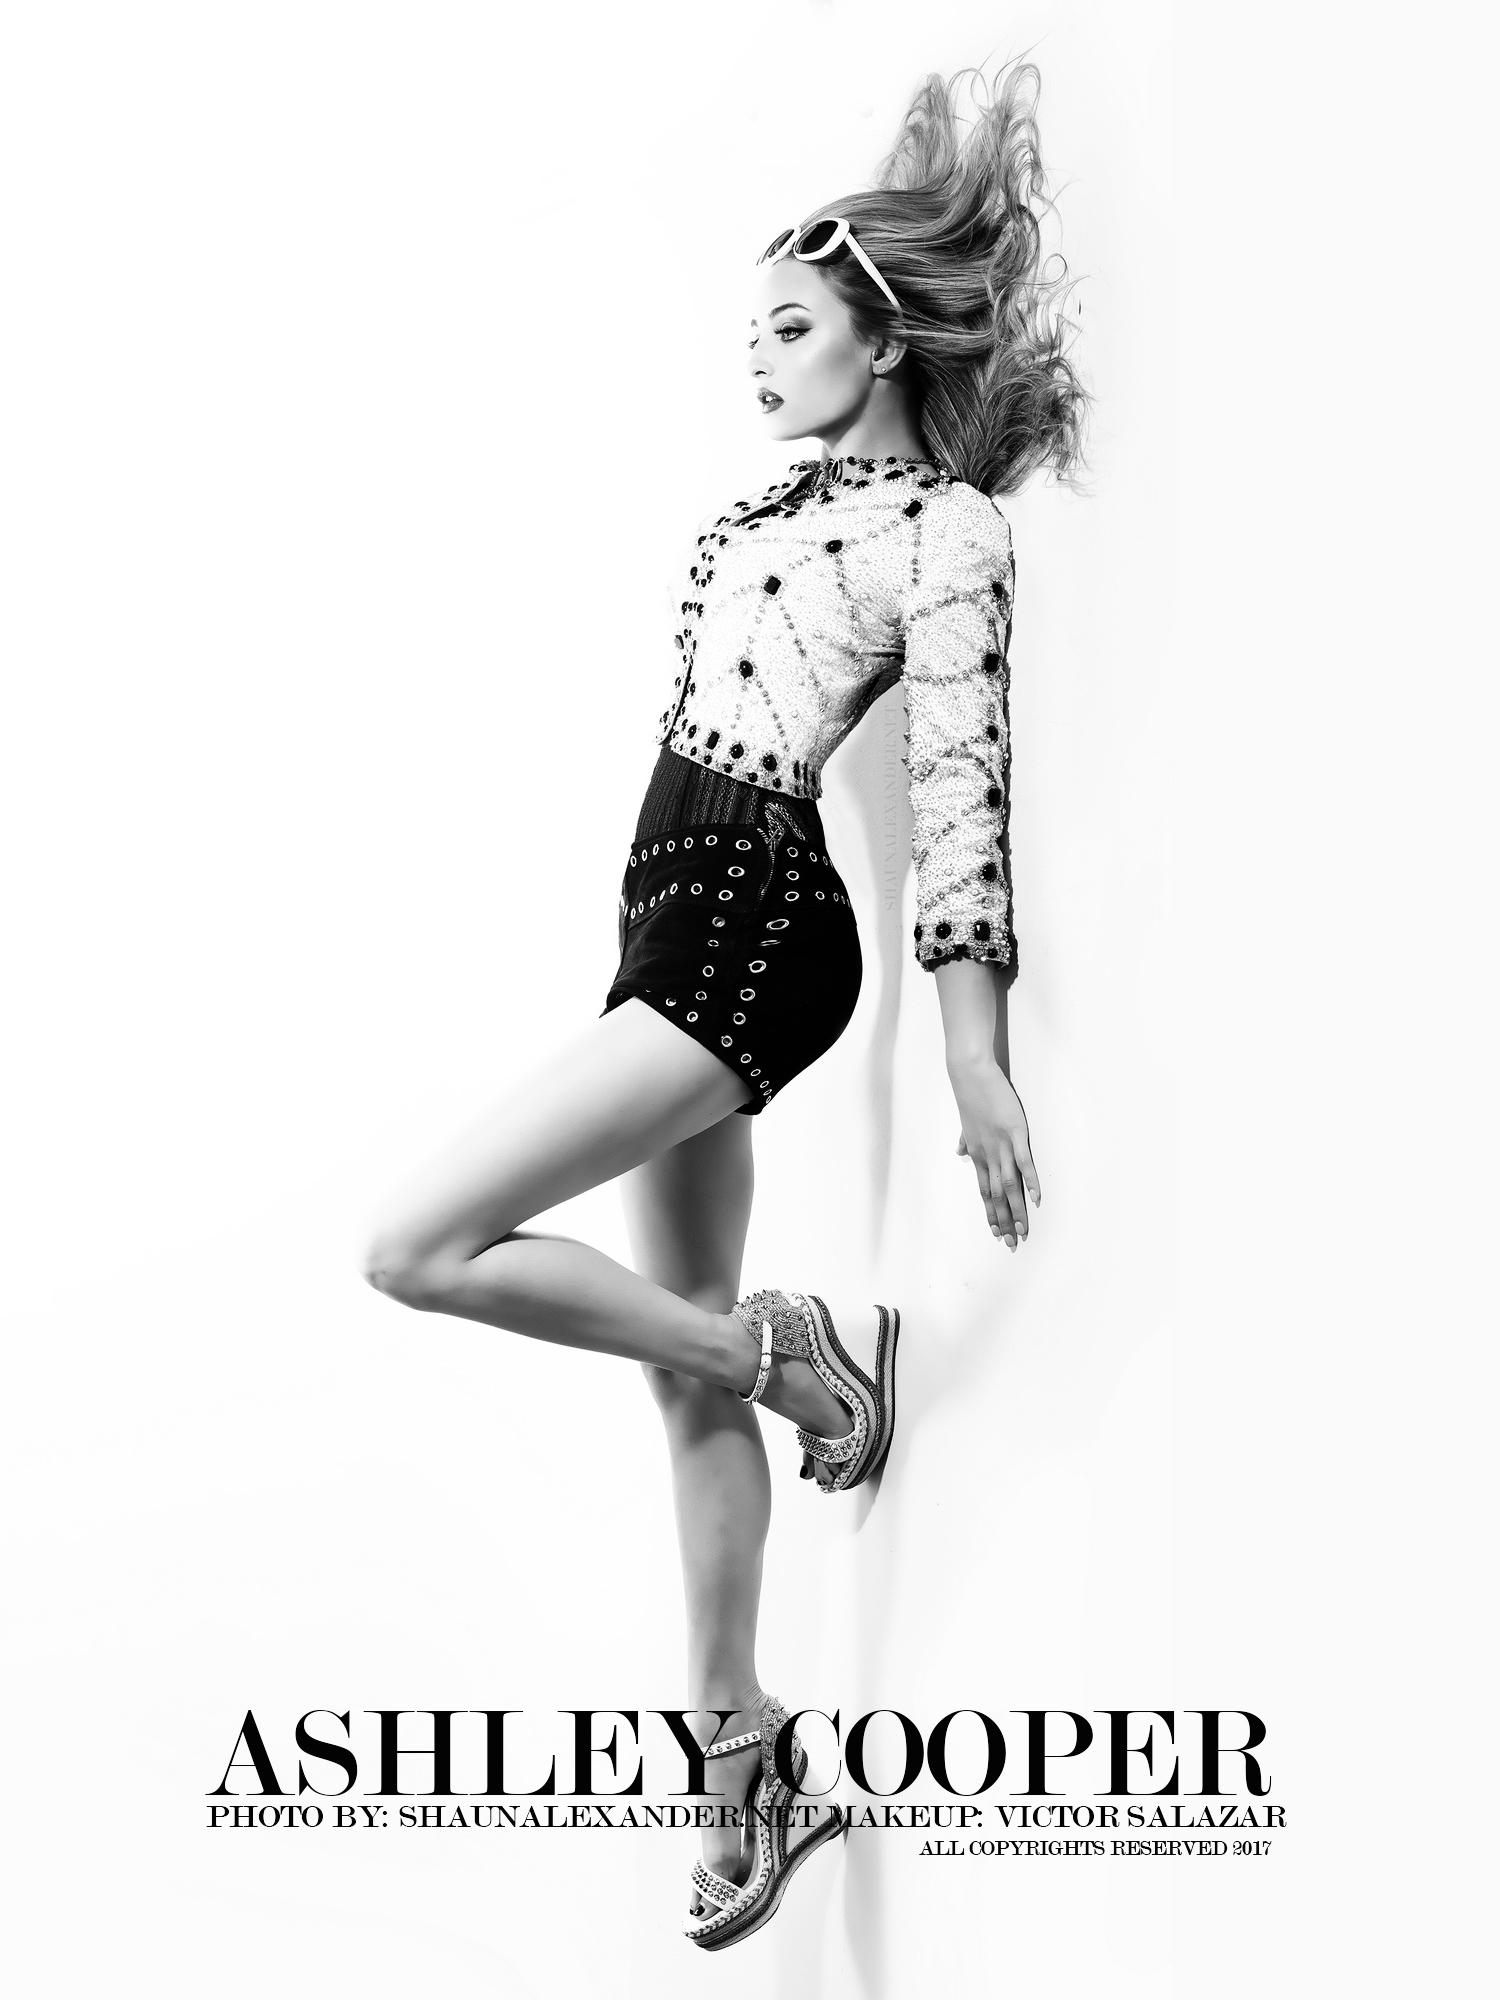 HIGH FASHION MODELING PHOTOS PHOTOGRAPHERS SHOOTS IN LOS ANGELES MODEL- ASHLEY COOPER